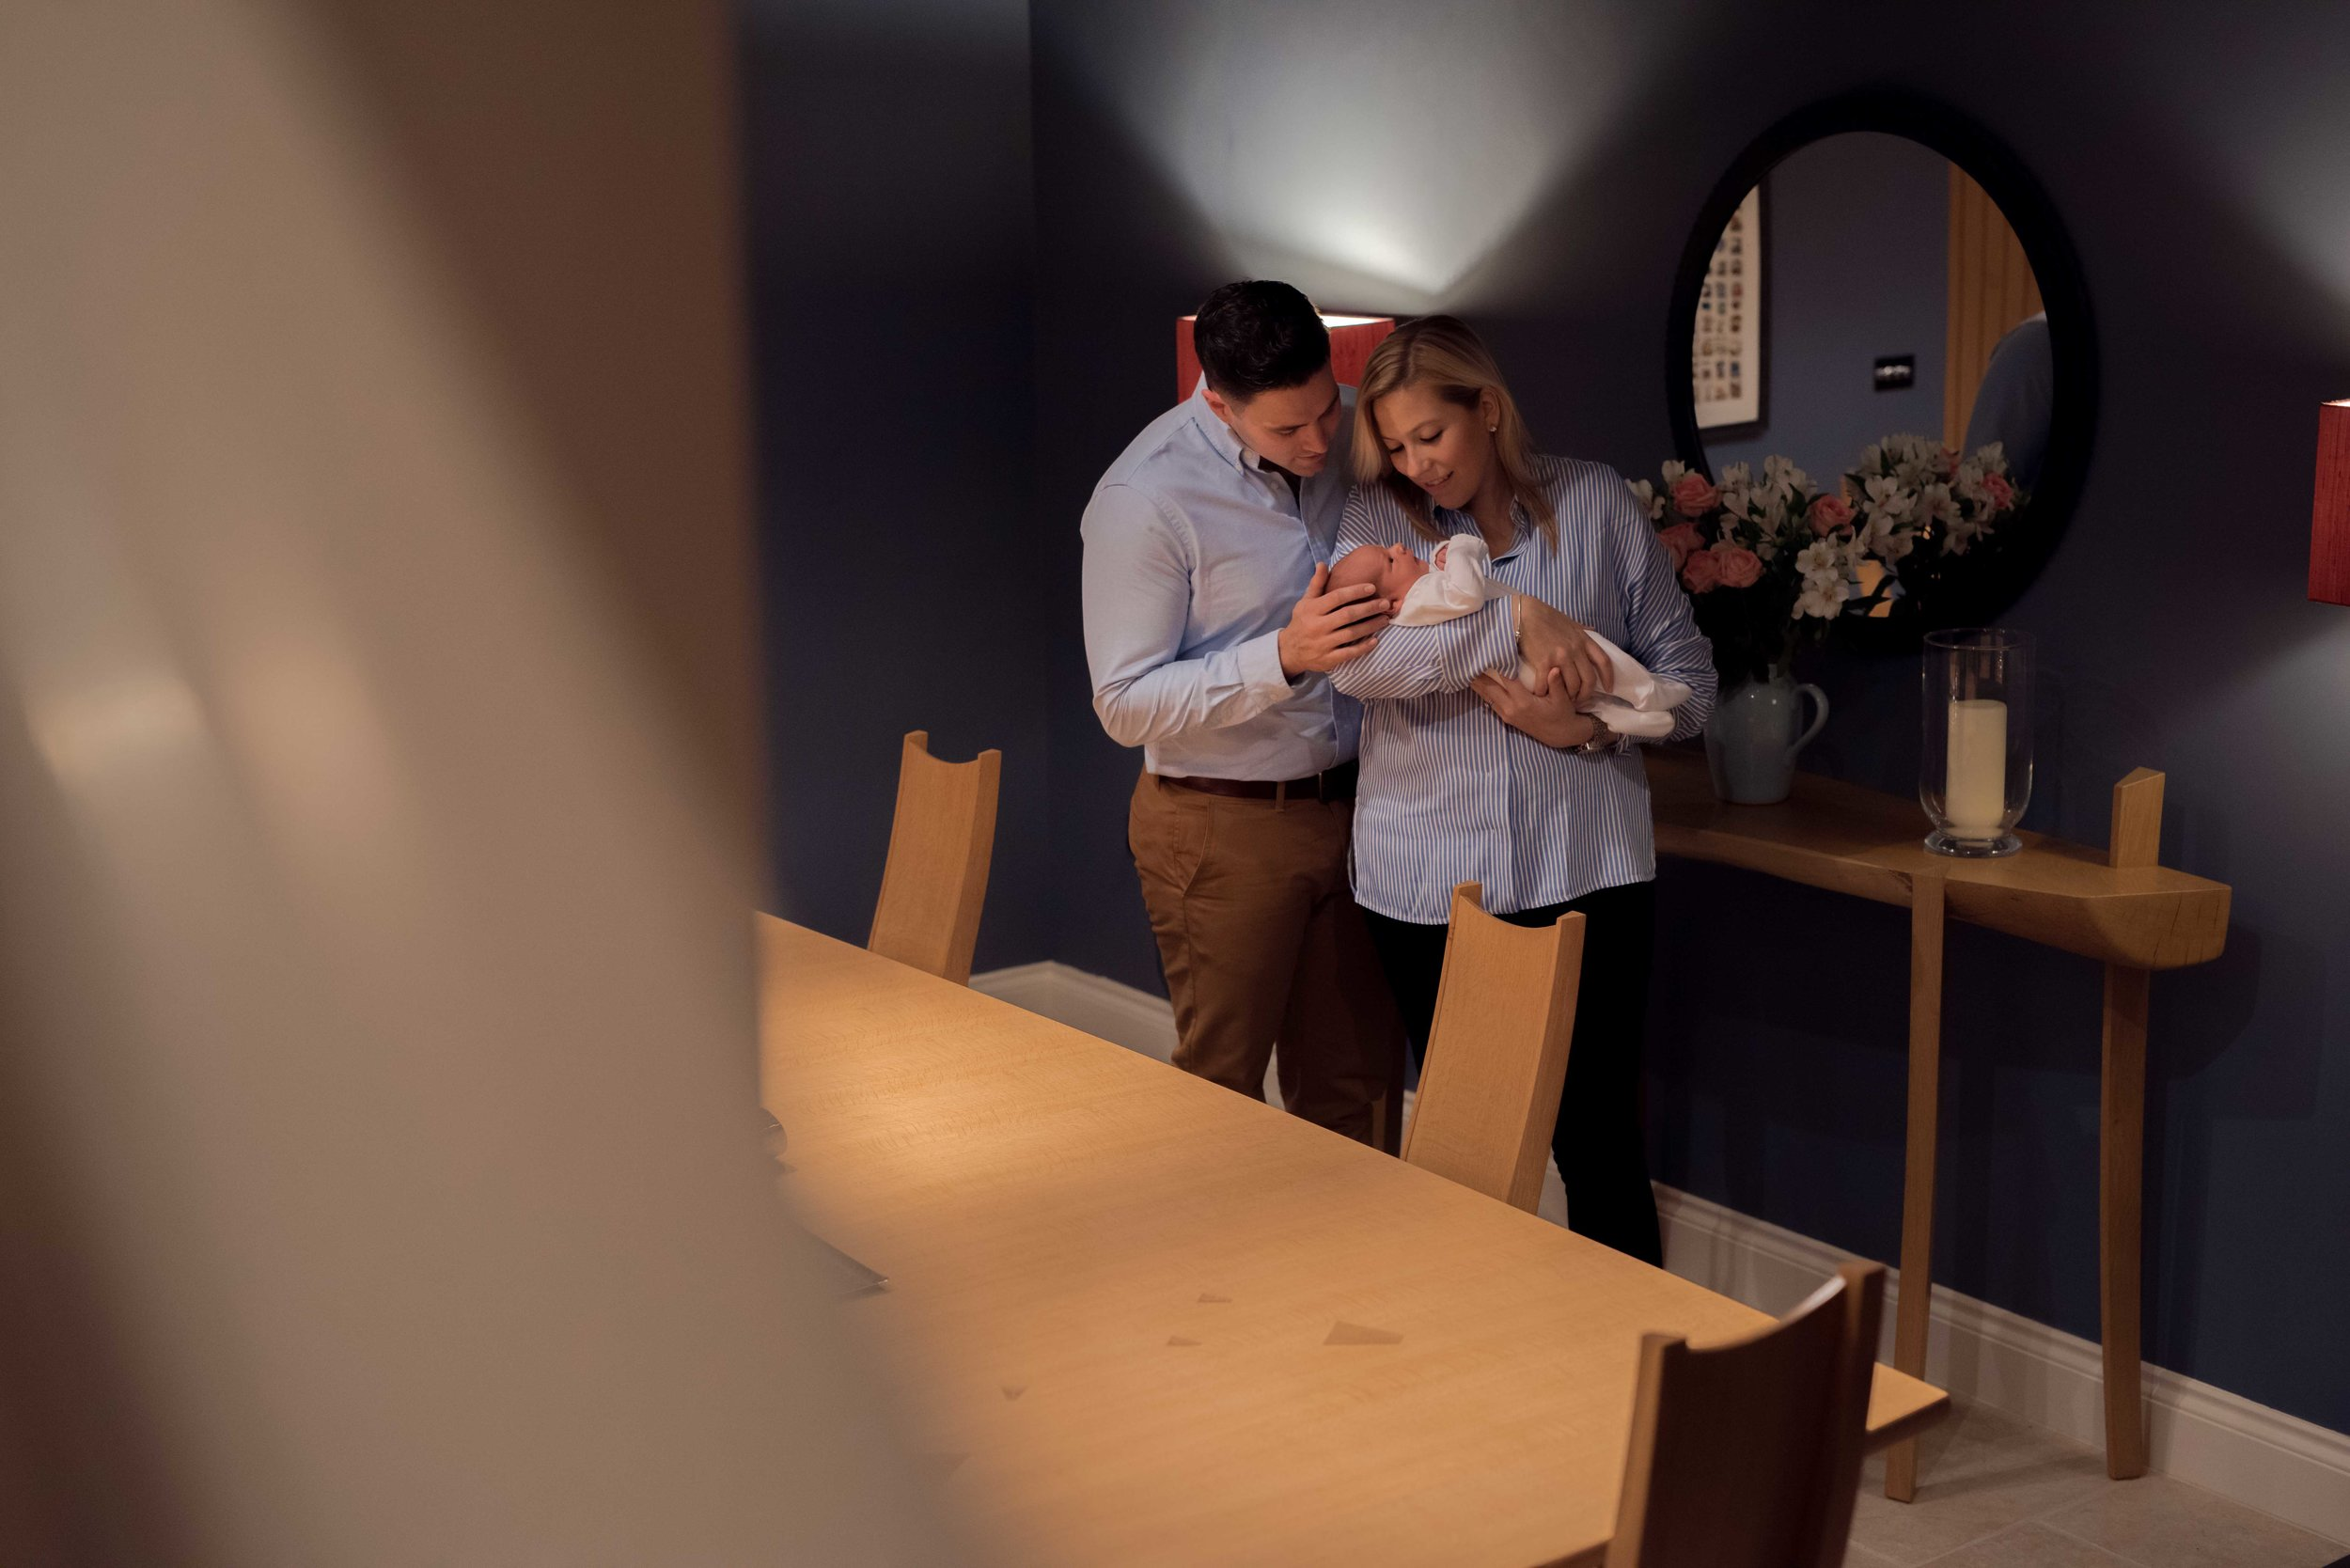 Newborn baby Harry is cuddled by his mum and dad as they stand and have a quiet moment in their dining room.